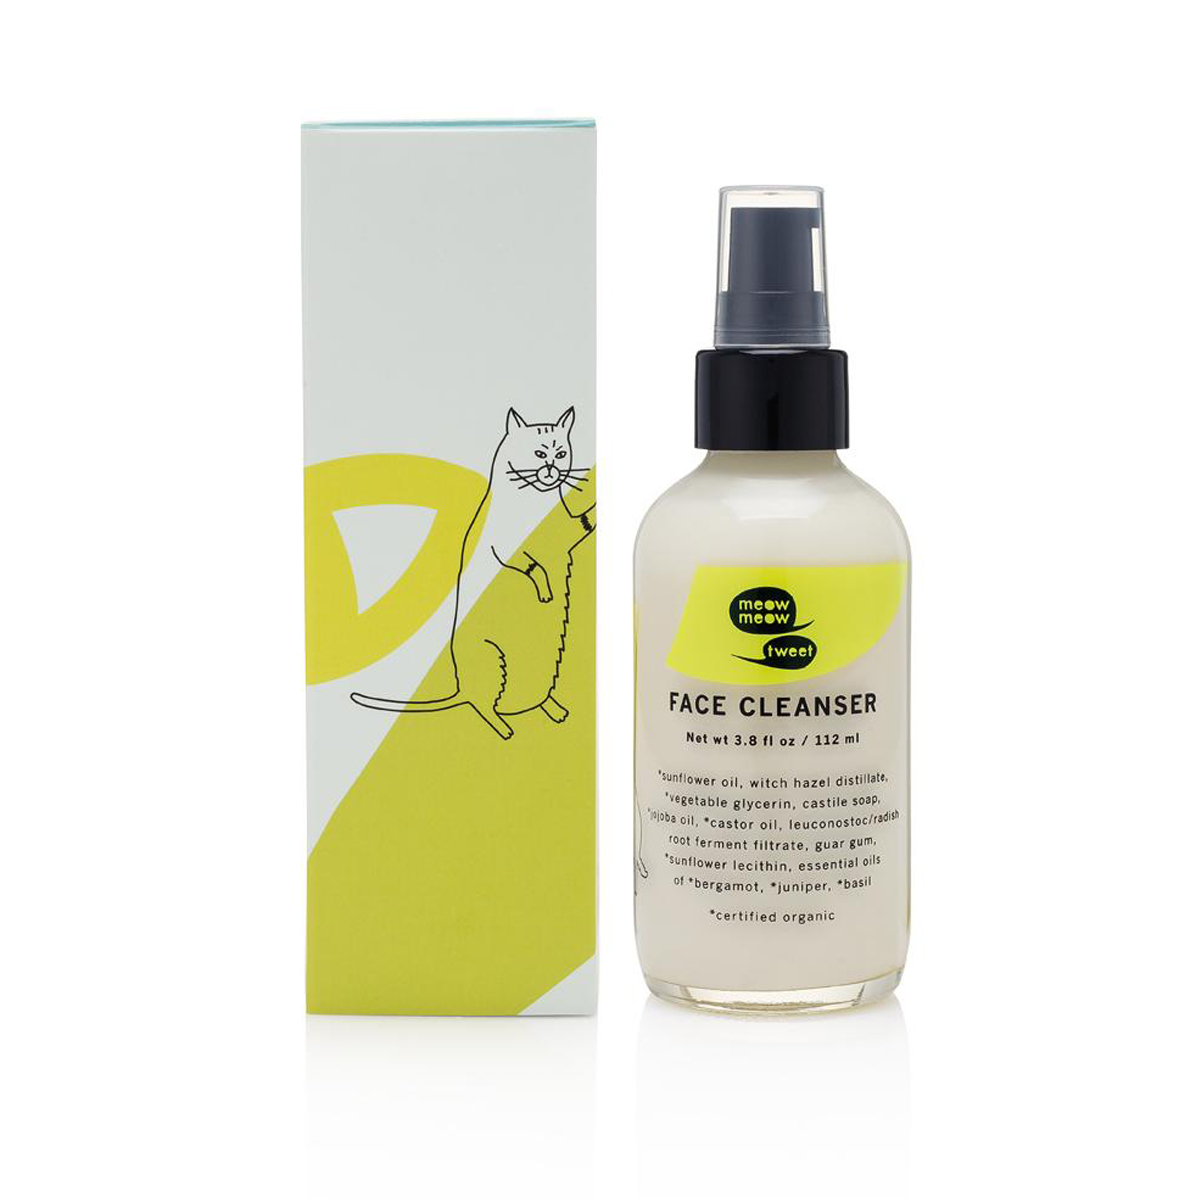 Meow Meow Tweet Oil Cleanser